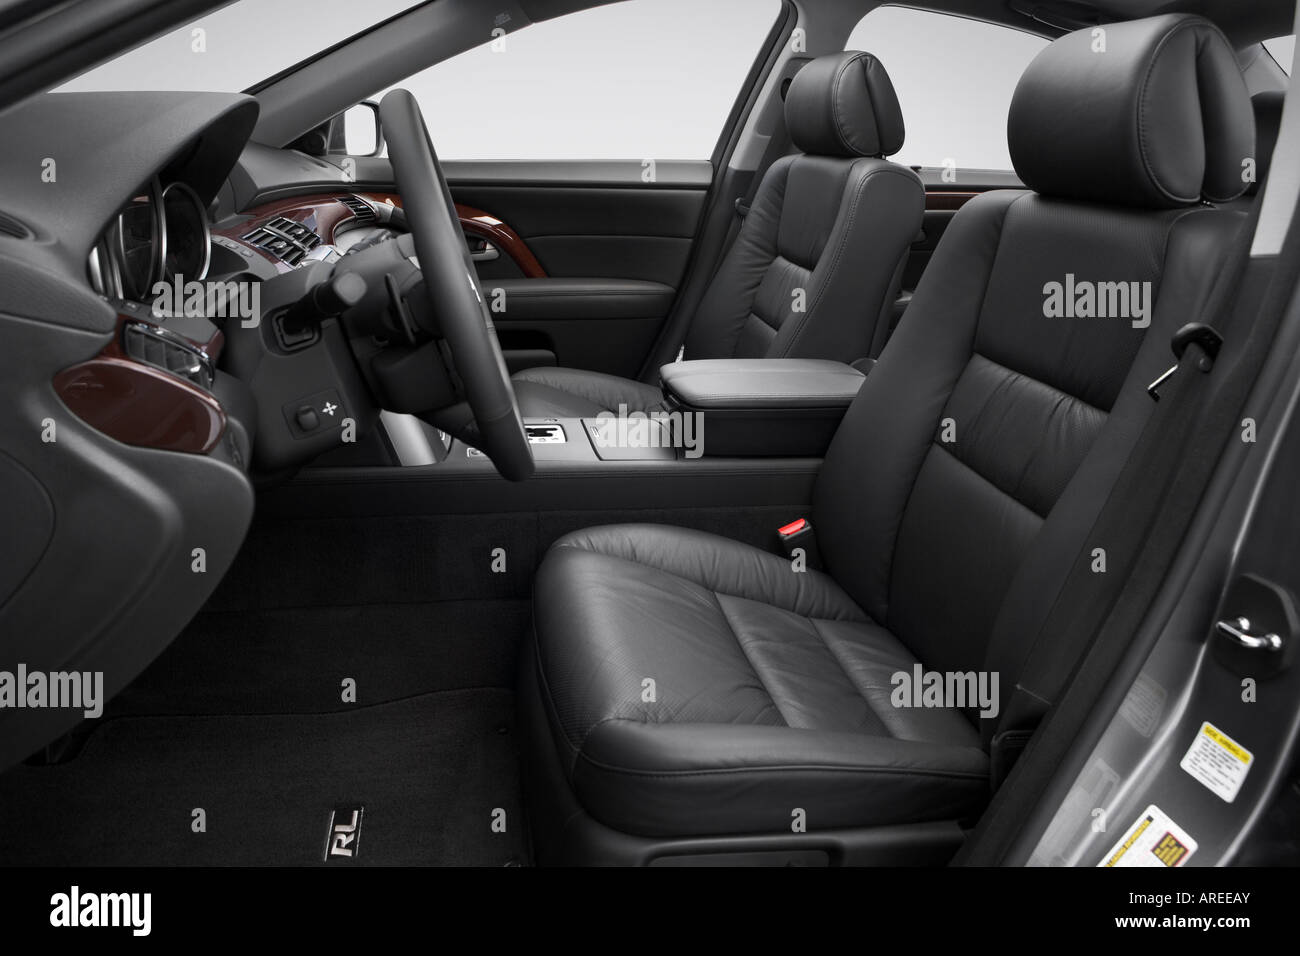 Groovy 2006 Acura Rl In Silver Front Seats Stock Photo 16029794 Spiritservingveterans Wood Chair Design Ideas Spiritservingveteransorg